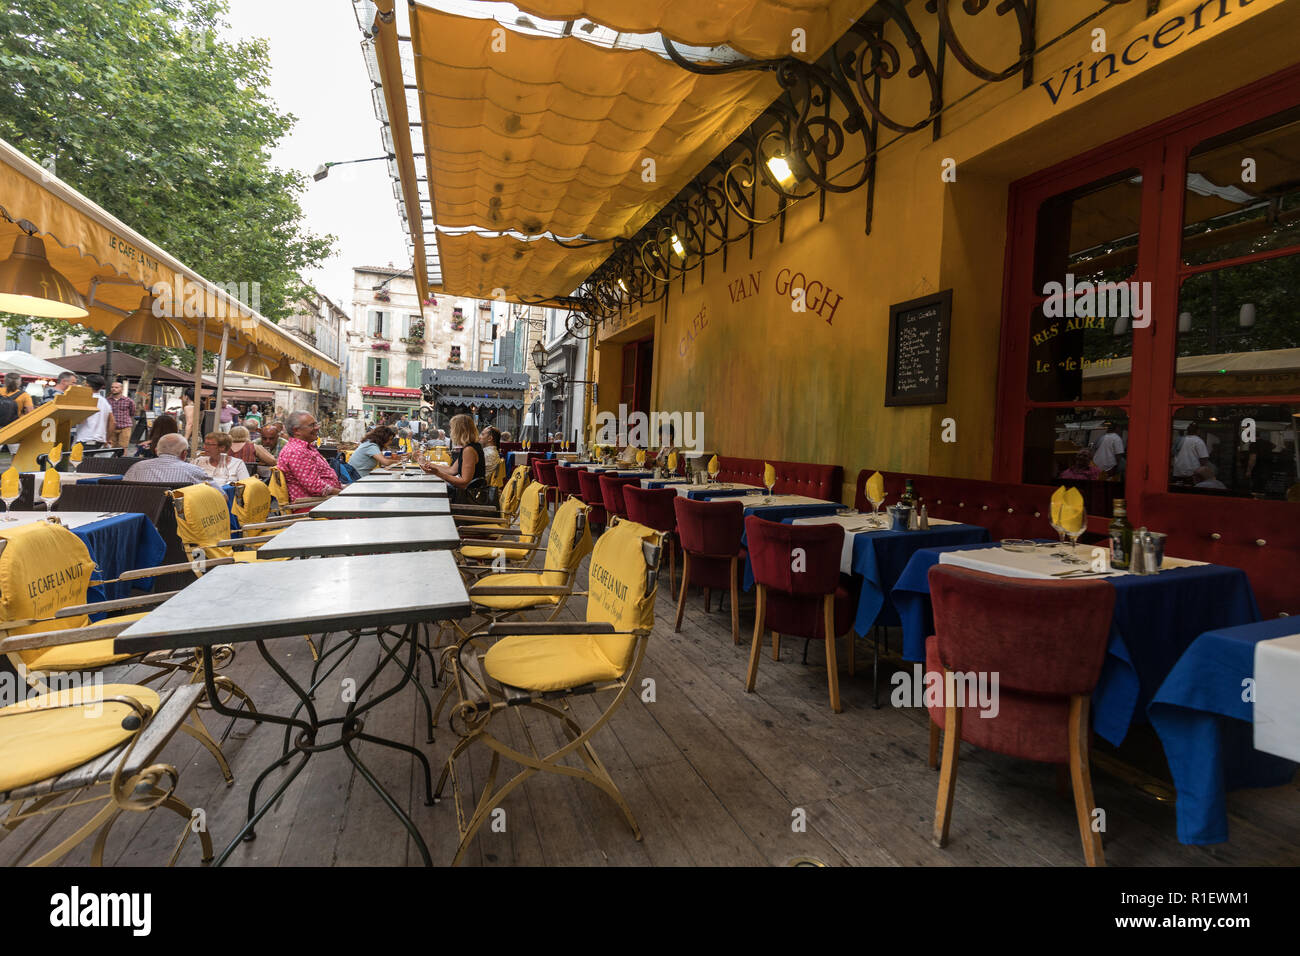 Arles, France - June 24, 2017: Cafe Van Gogh at Place du Forum in Arles. Provence, France. This is the same Cafe Terrace that Vincent van Gogh painted - Stock Image